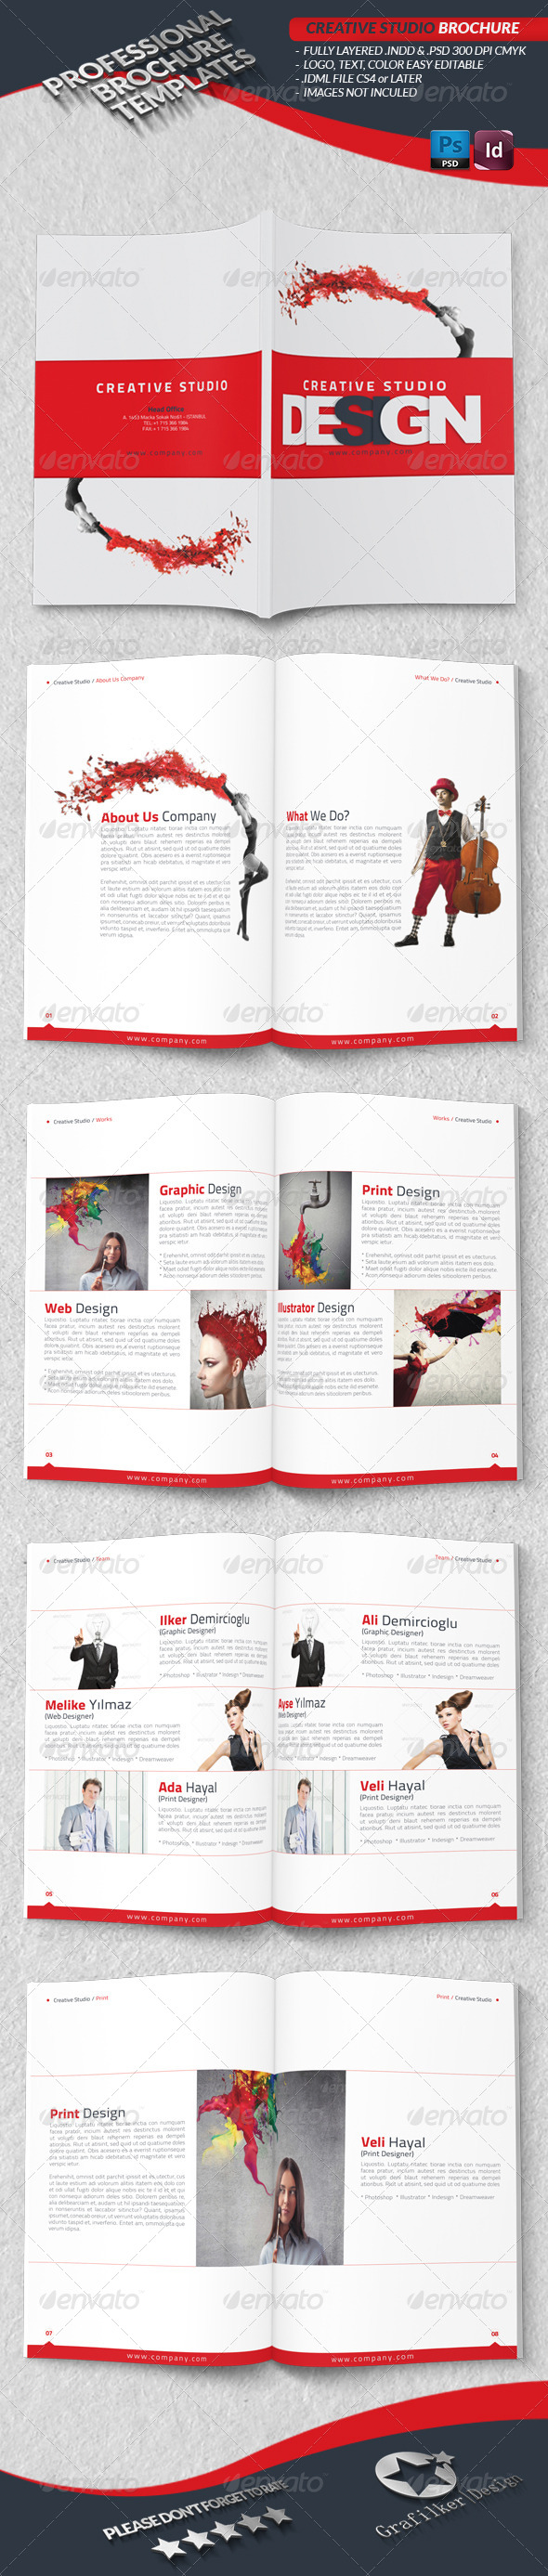 Creative Studio Brochure Graphicriver Corporate Business Brochure